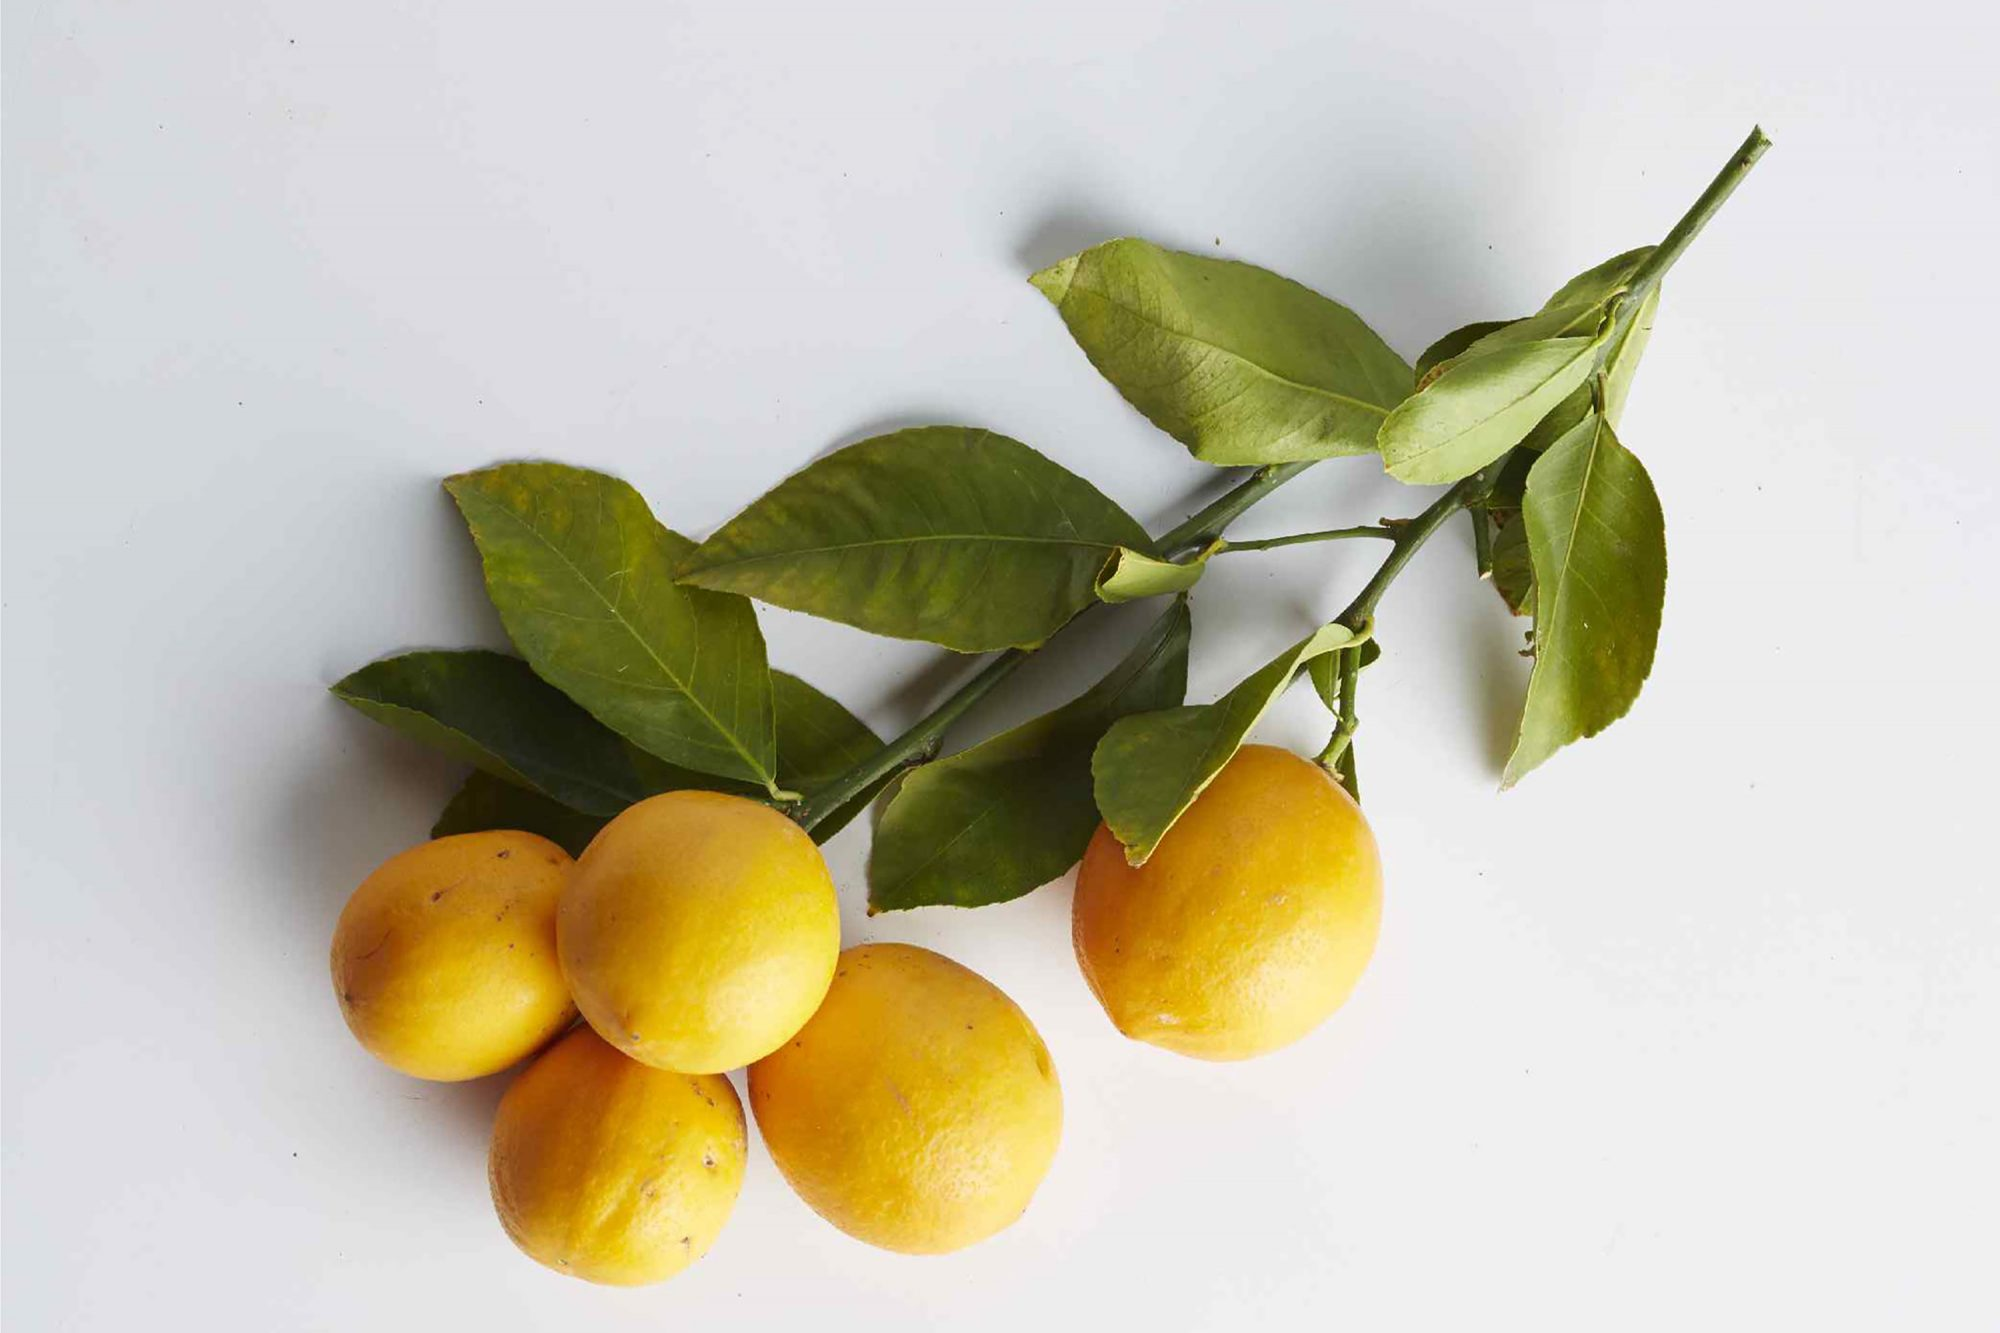 What Is a Meyer Lemon and How Is It Different From a Regular Lemon?